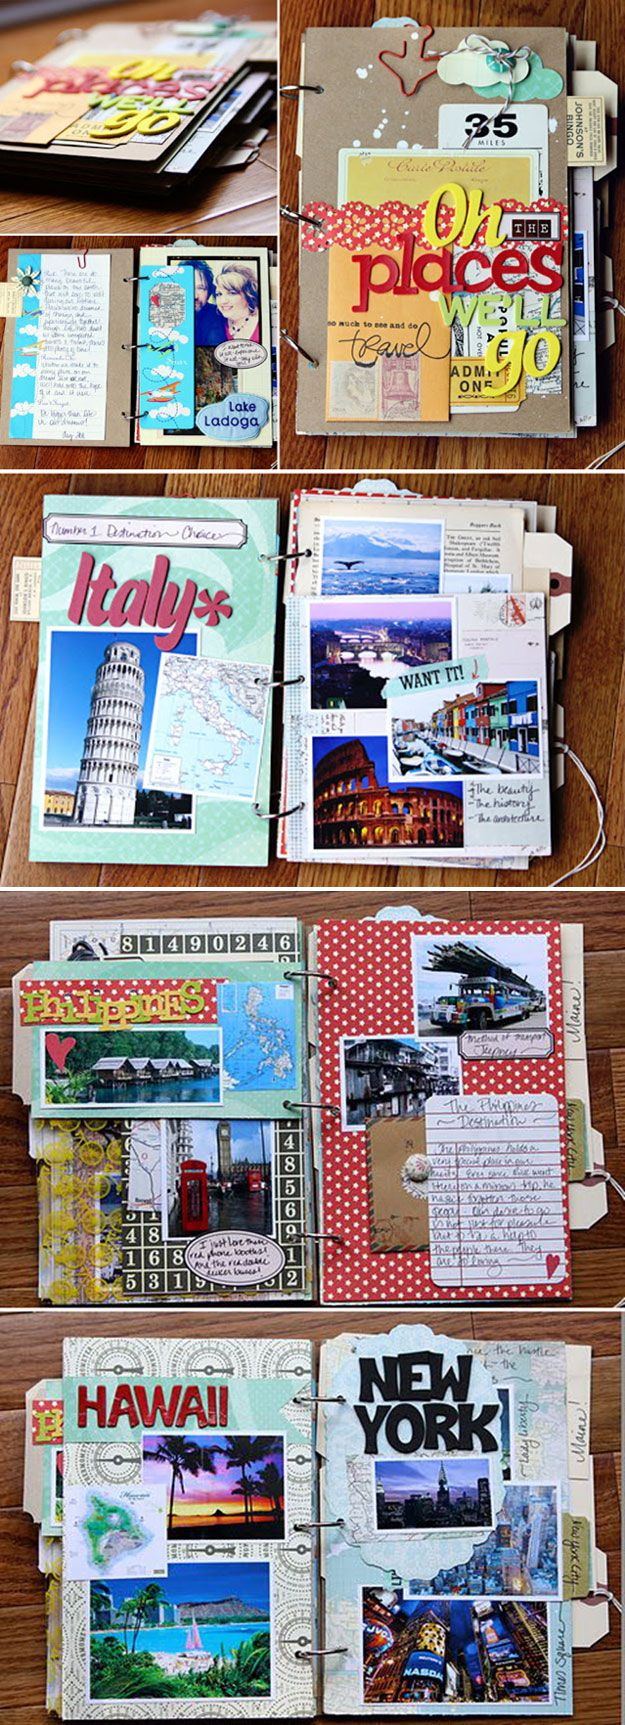 33 Creative Scrapbook Ideas Every Crafter Should Know Scrapbooking